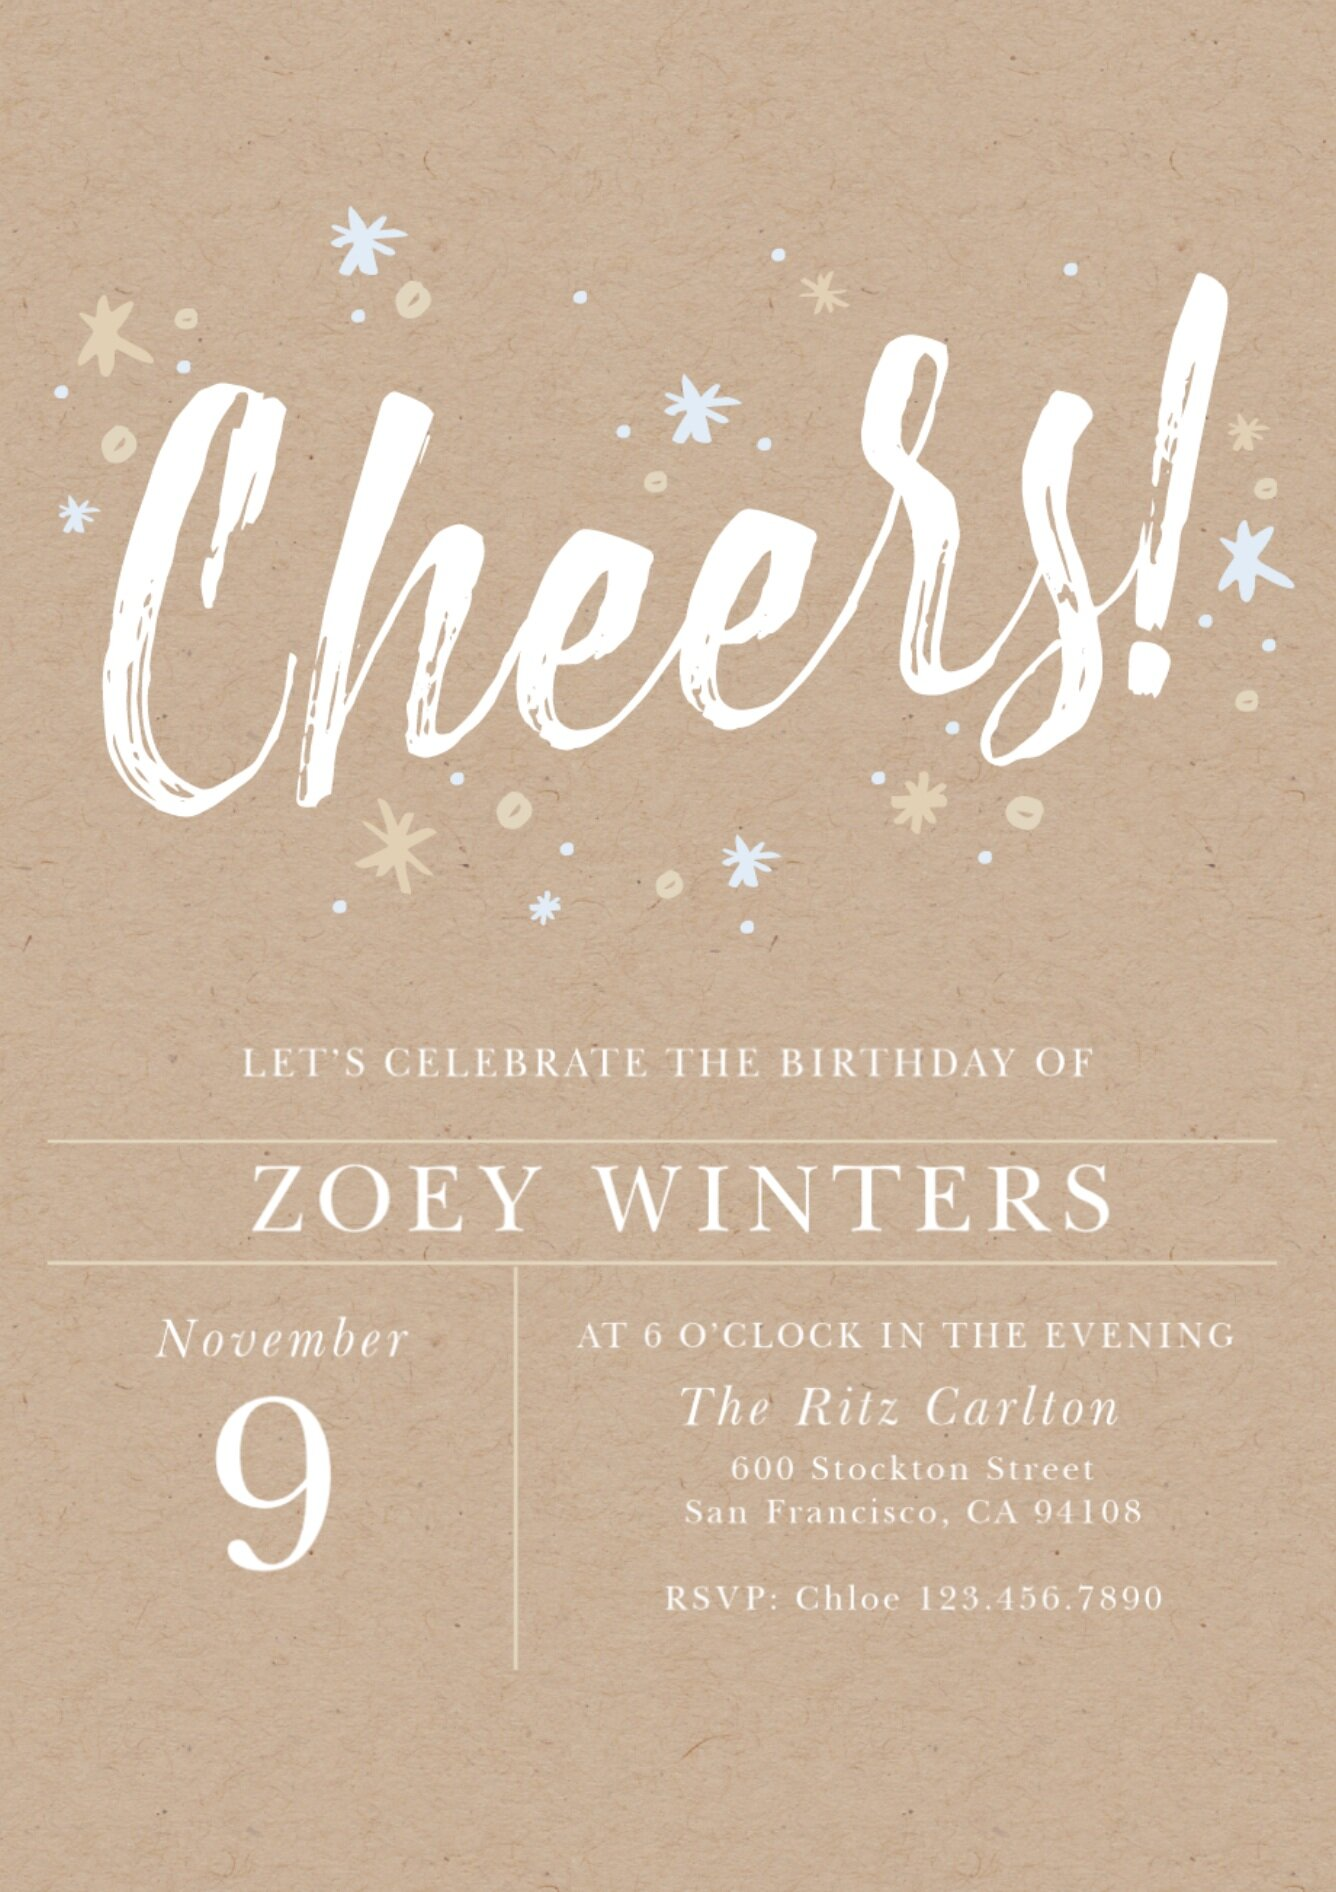 I'm personally loving this modern design for a birthday invite and this cozy Christmas party invite.